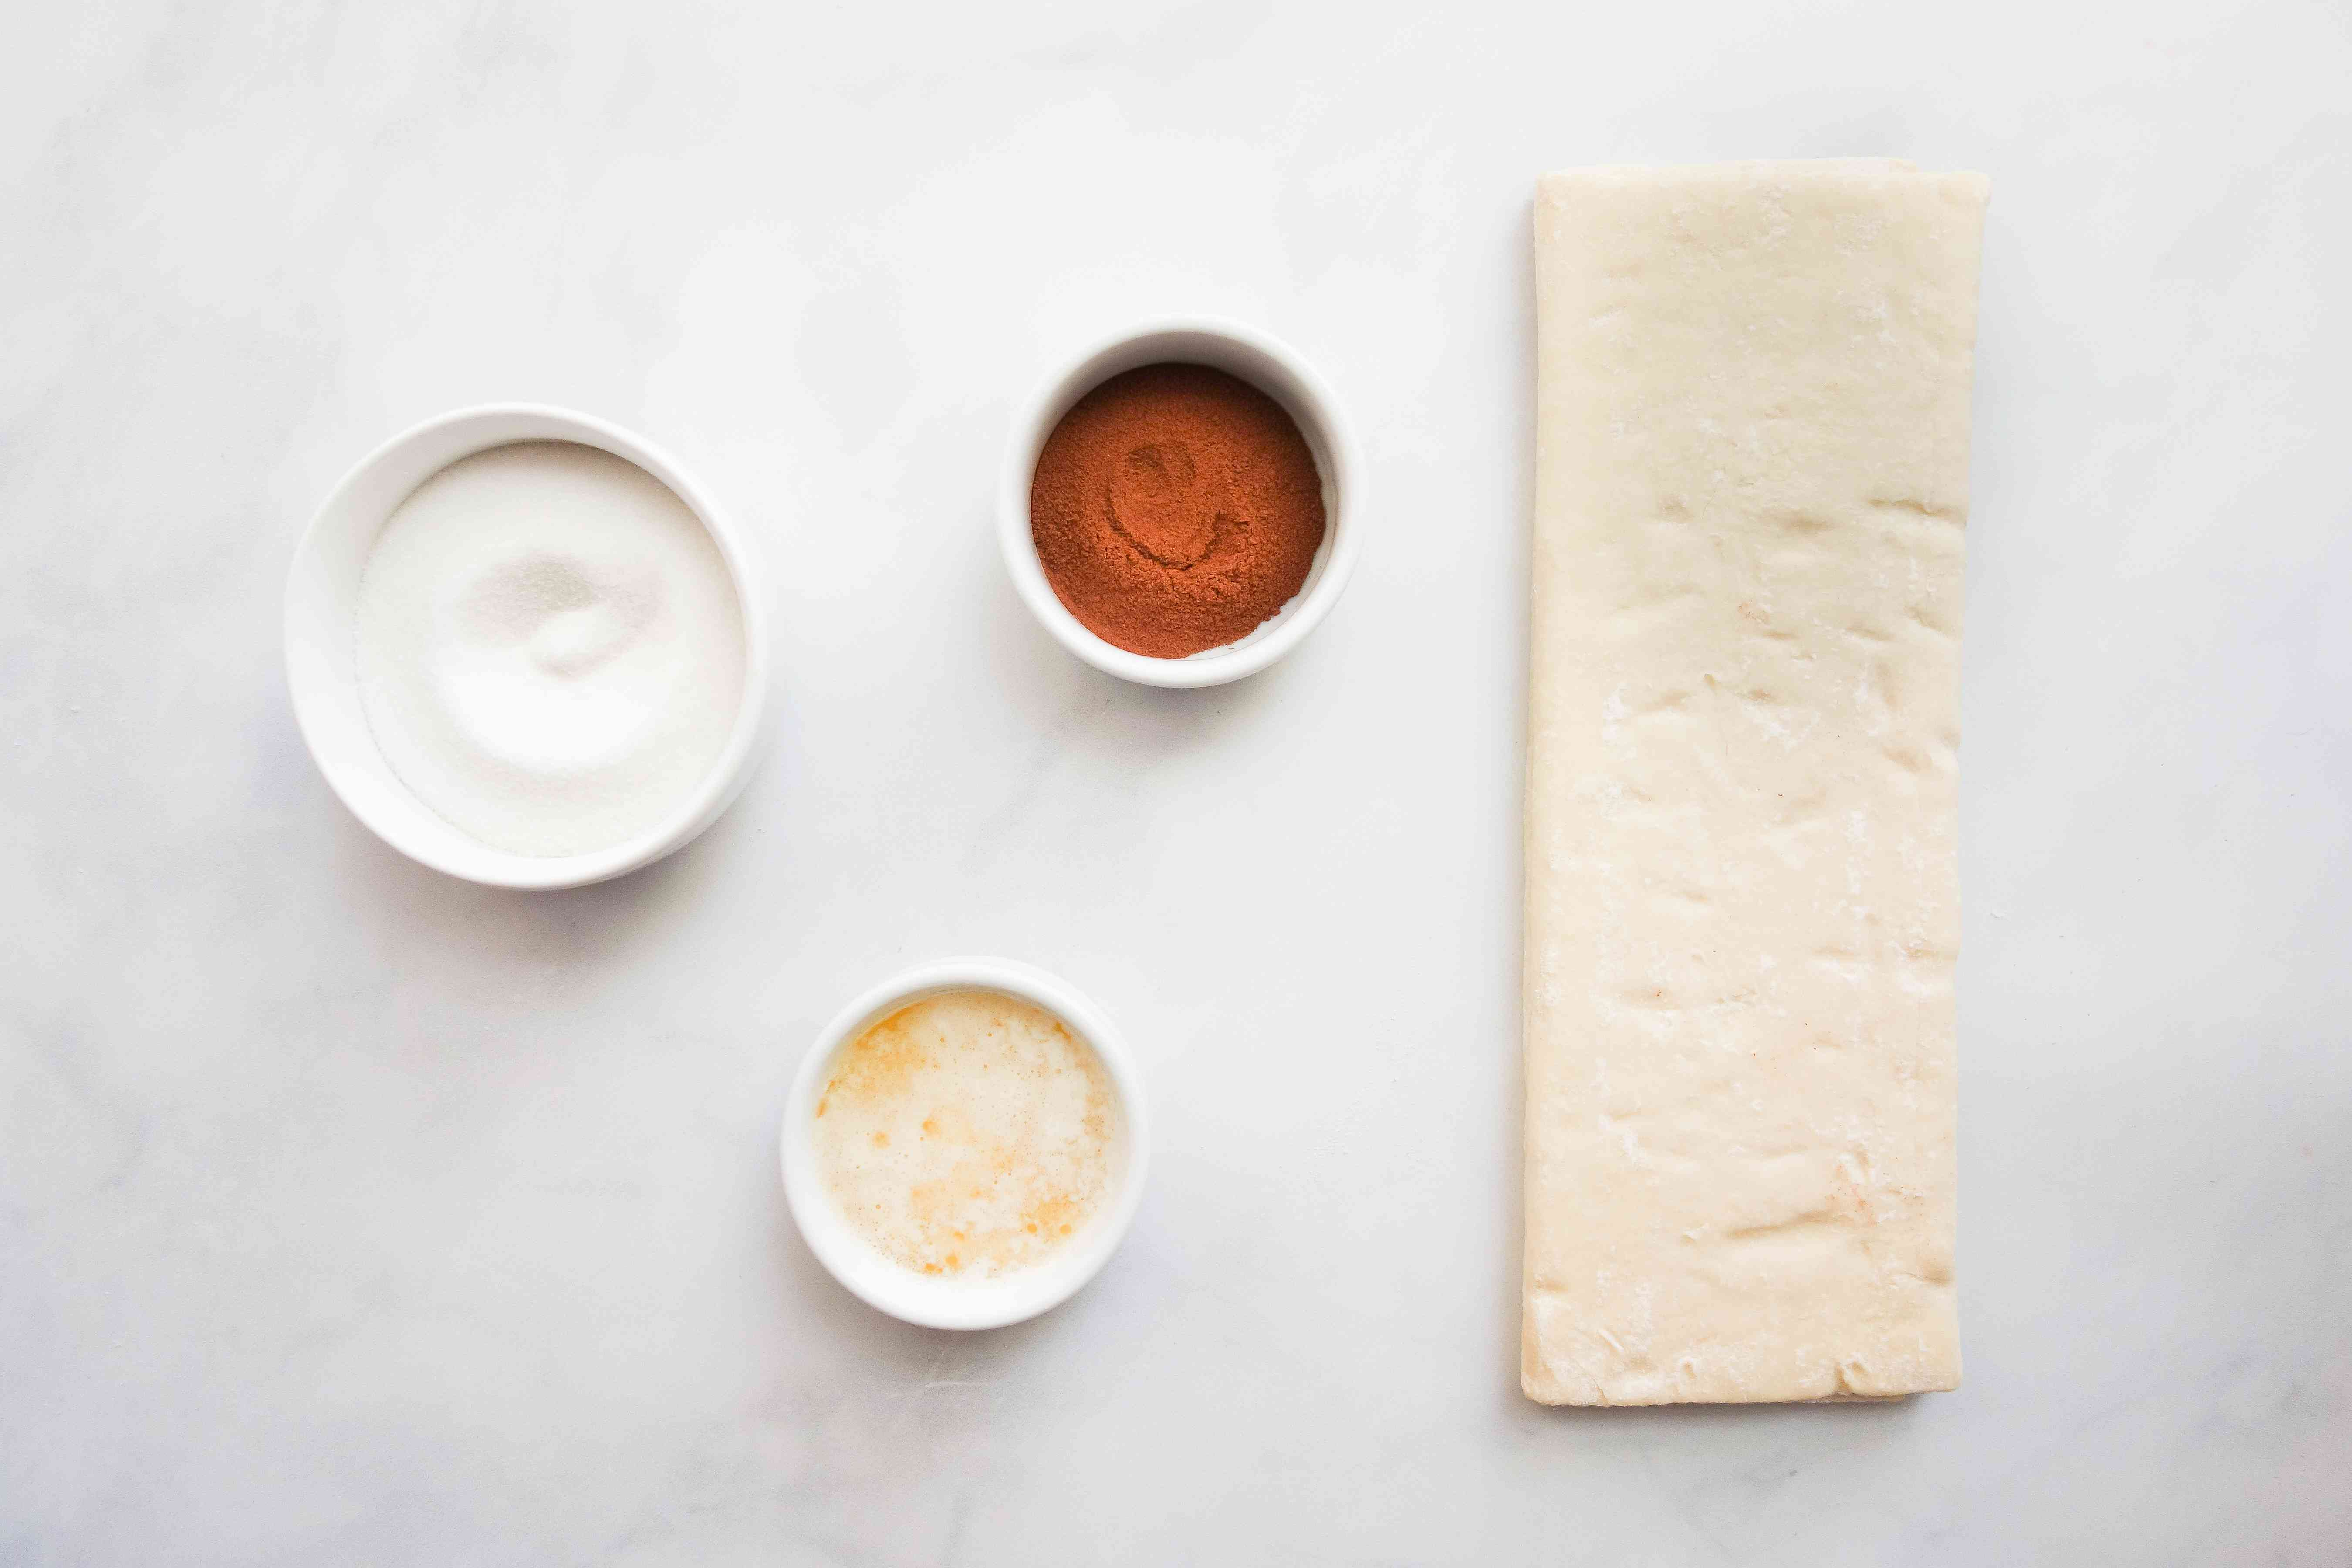 Puff Pastry Hearts ingredients